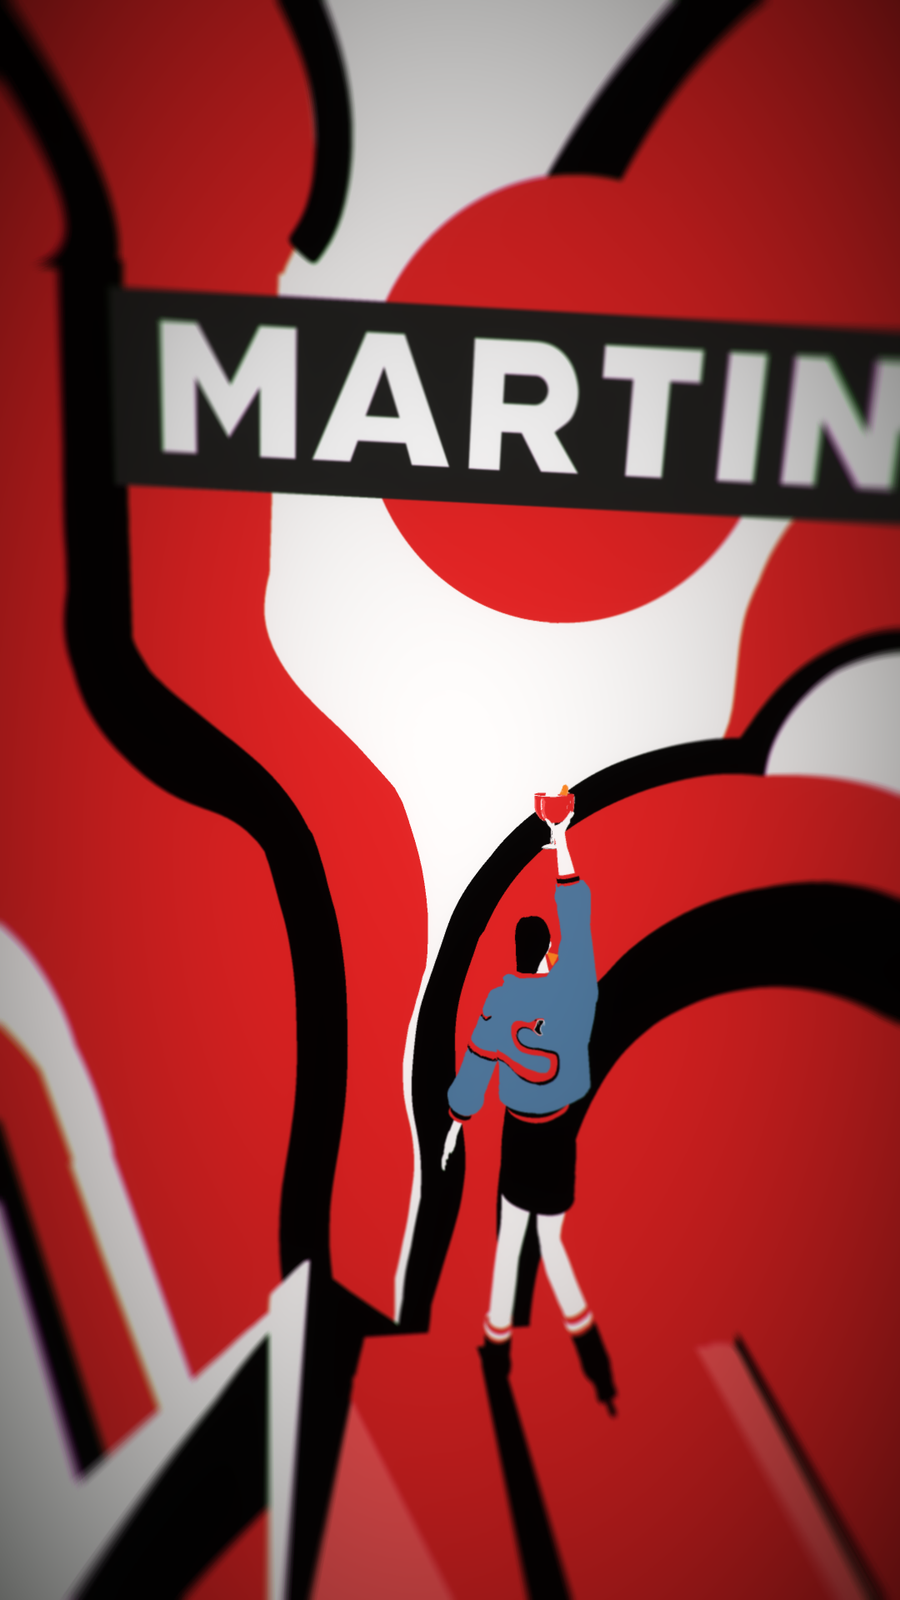 Ode to the Sun – Martini, Emiliano Ponzi 6